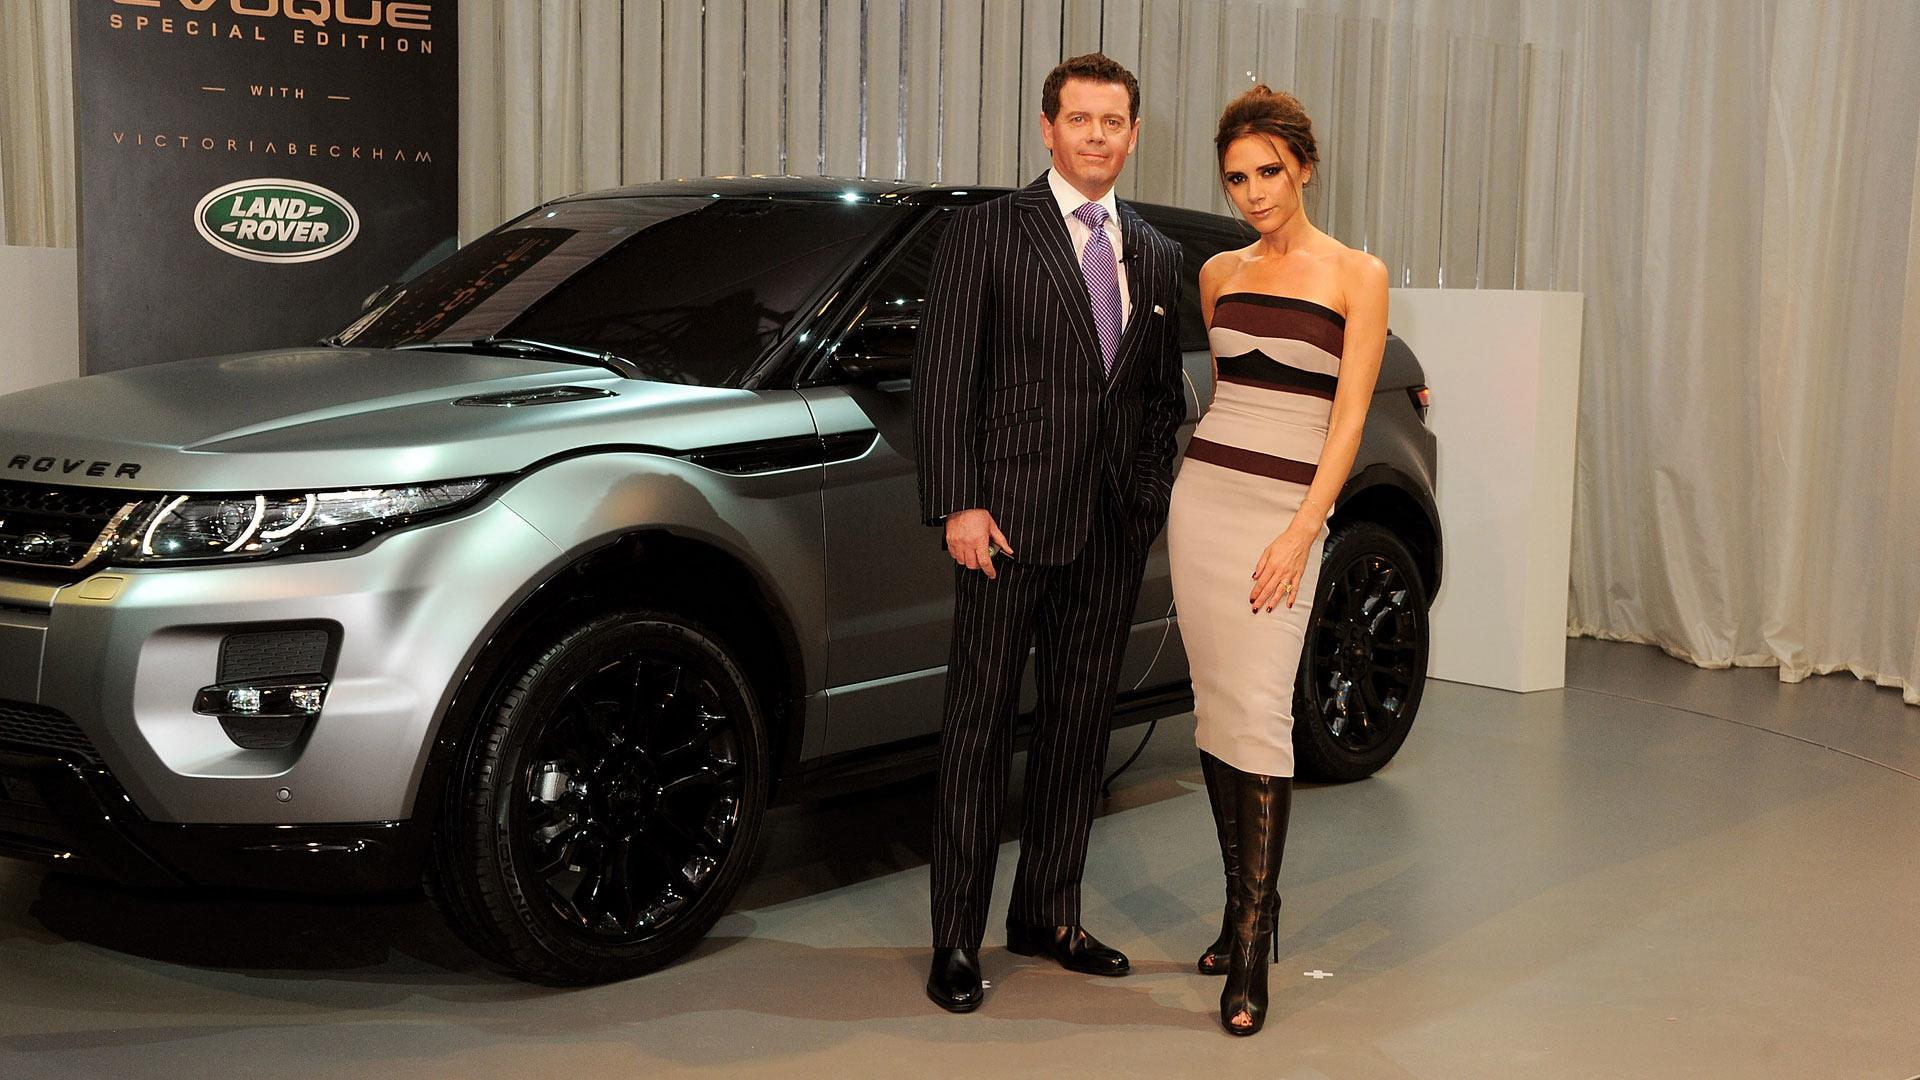 https://icdn-0.motor1.com/images/mgl/ZA2Go/s1/gerry-mcgovern-and-victoria-beckham.jpg